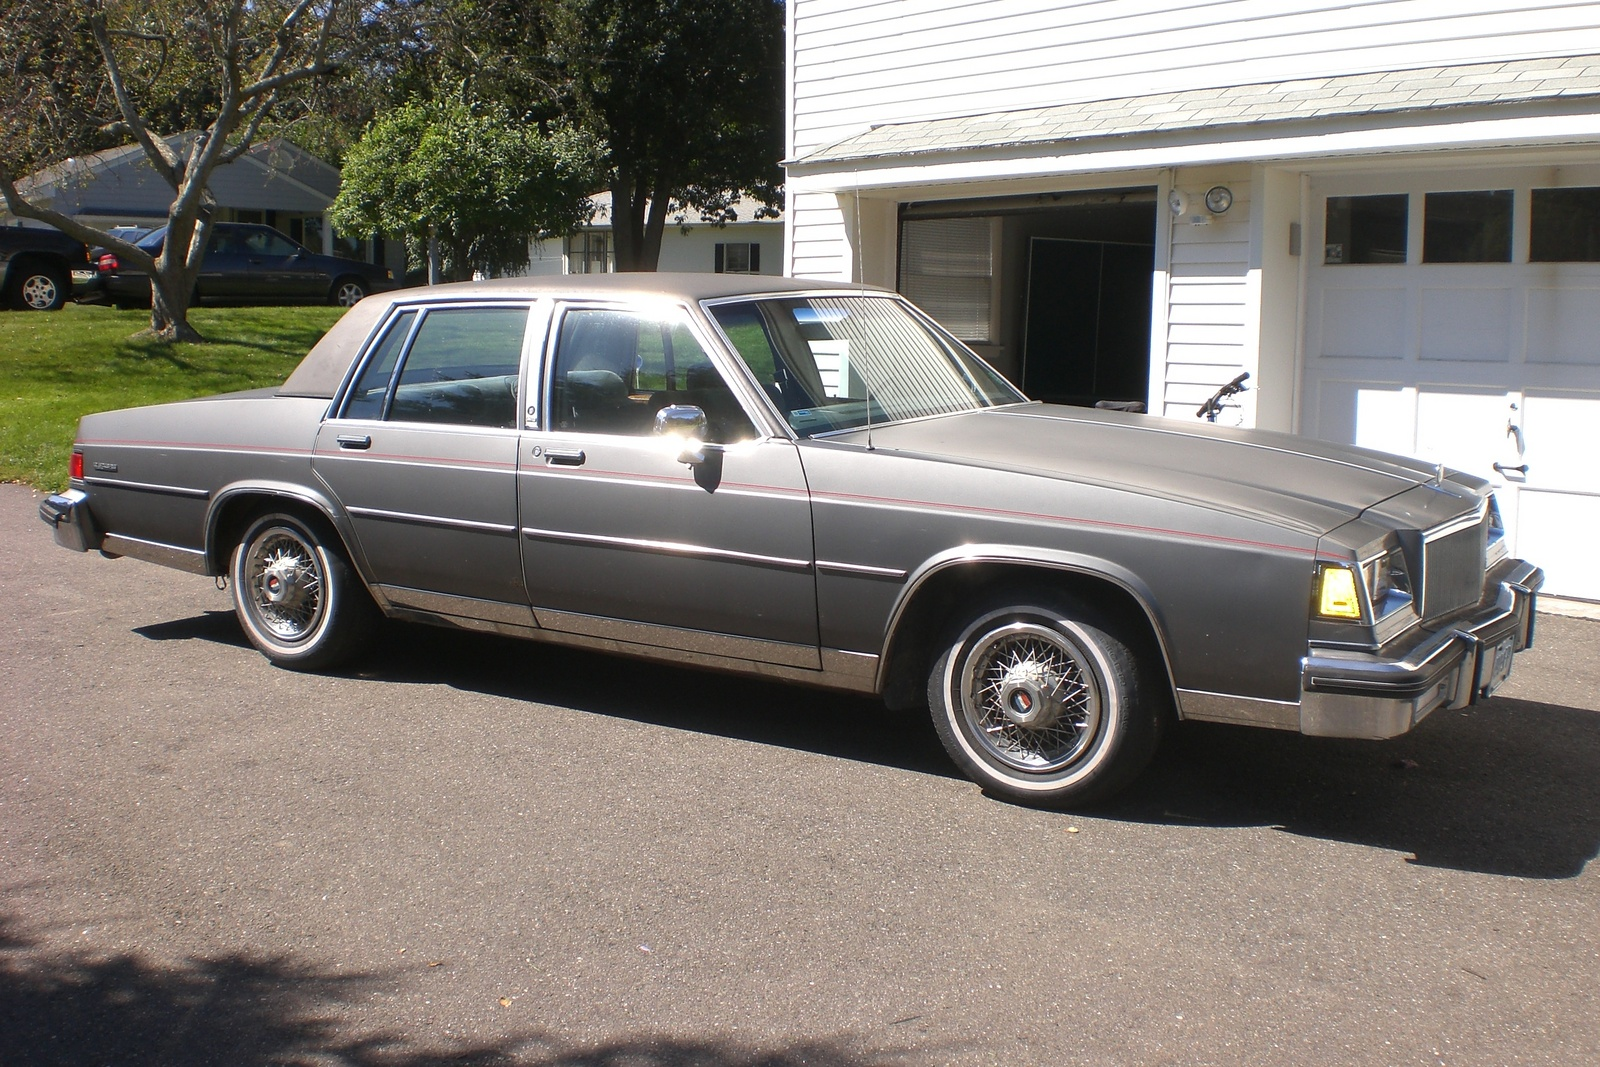 buick lesabre 1986 review amazing pictures and images look at the car. Black Bedroom Furniture Sets. Home Design Ideas